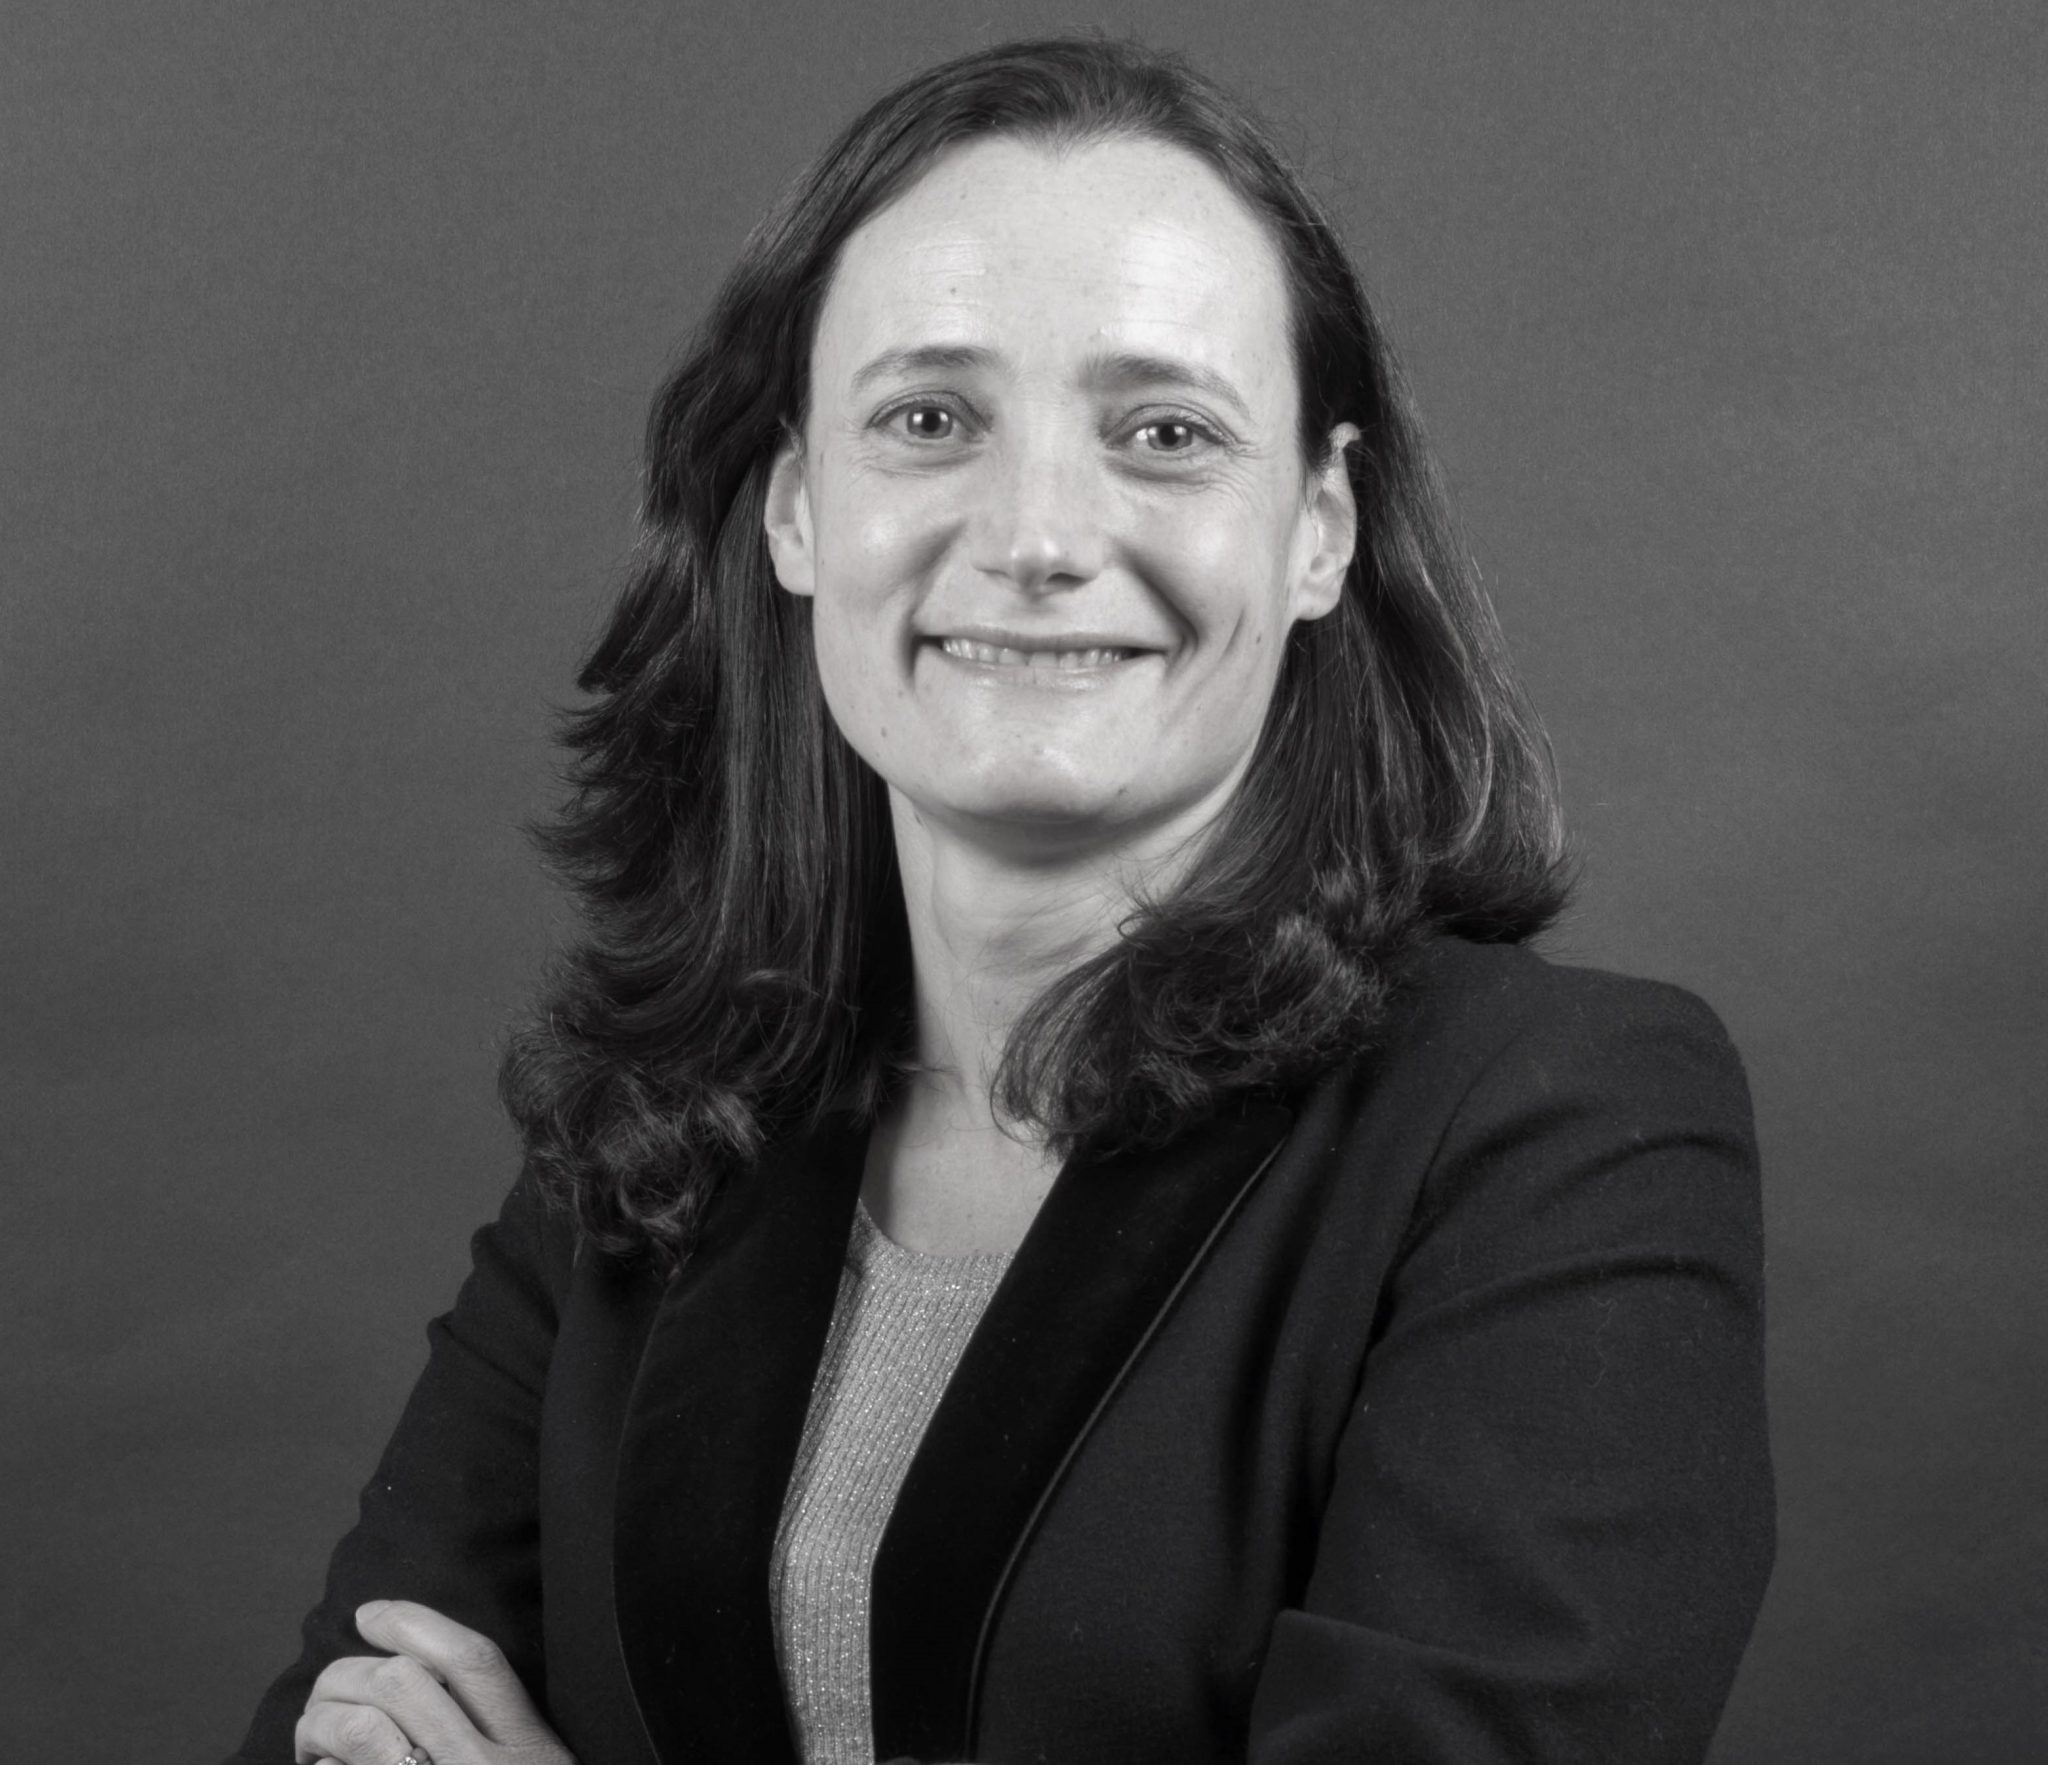 Entretien avec Carine GUERBET – Strategic Marketing Manager chez Neopost Shipping